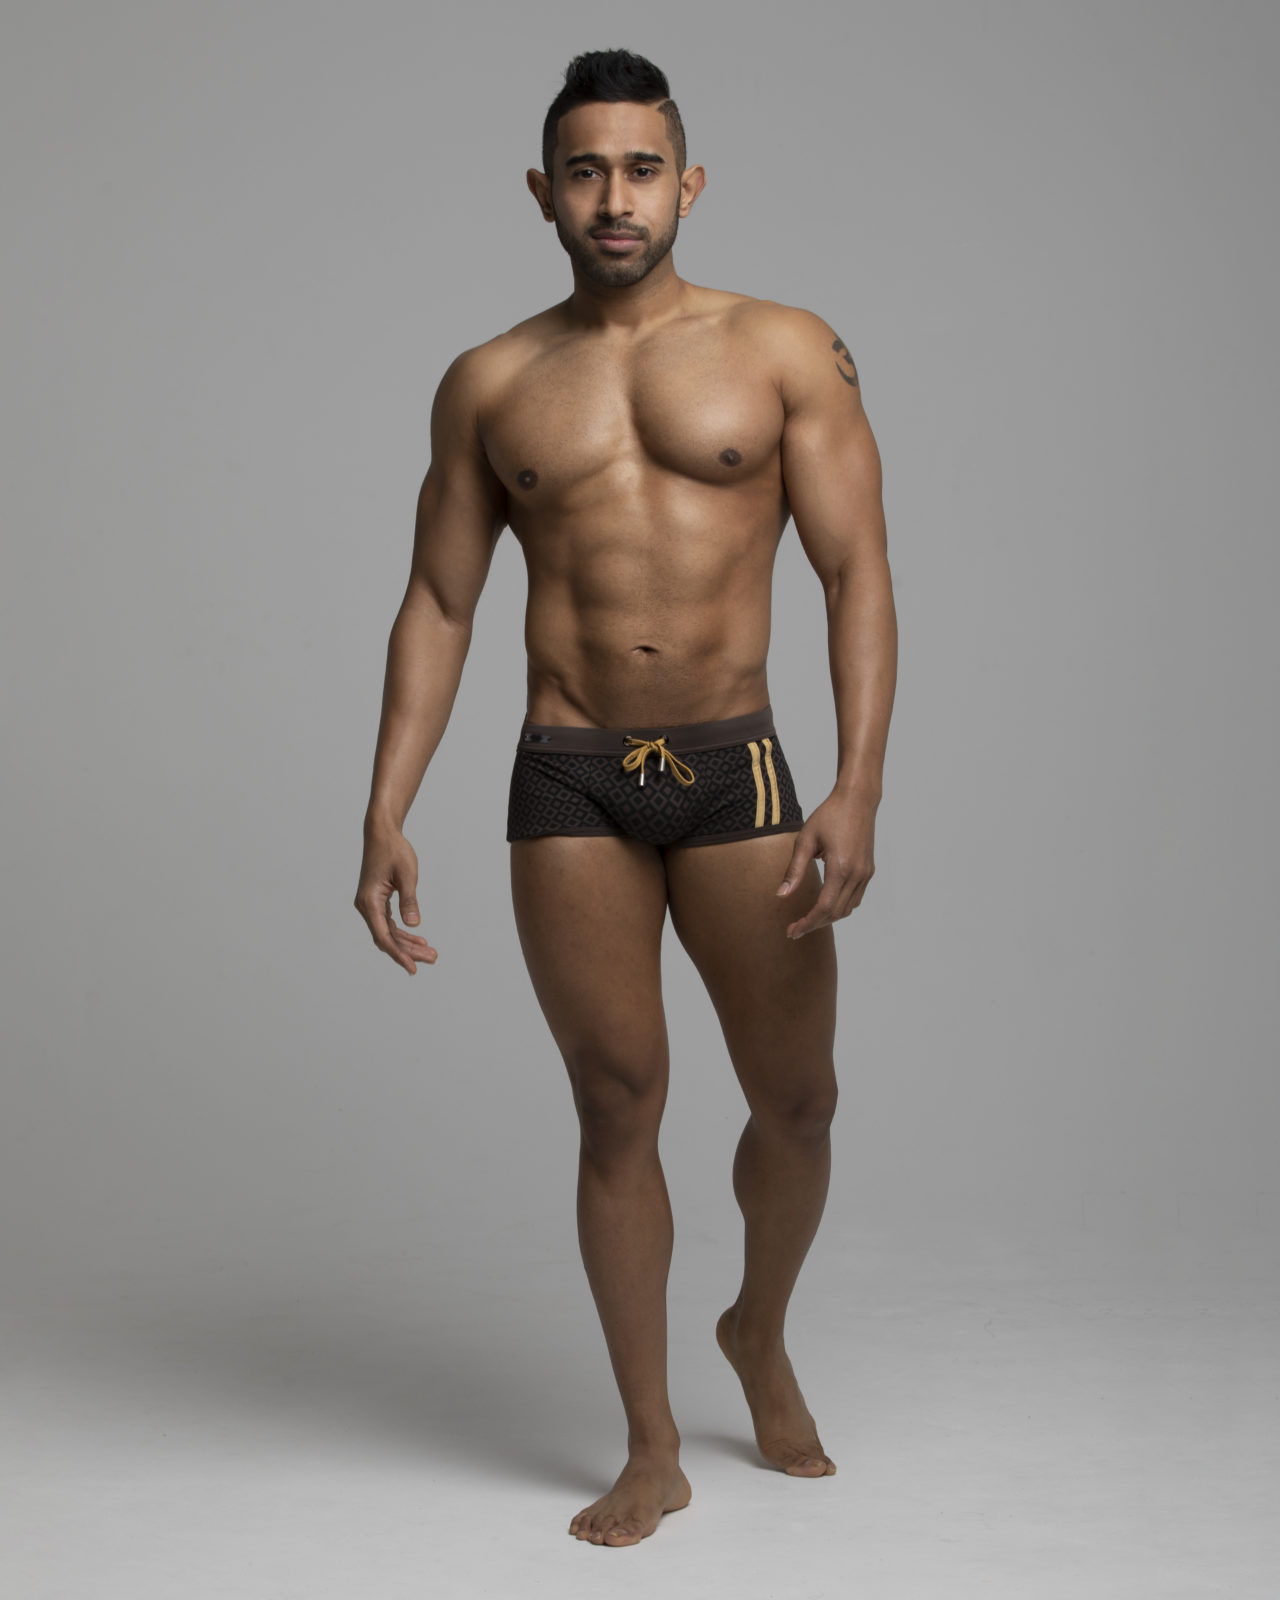 Mike Singh, Best Gay Life mr muscle